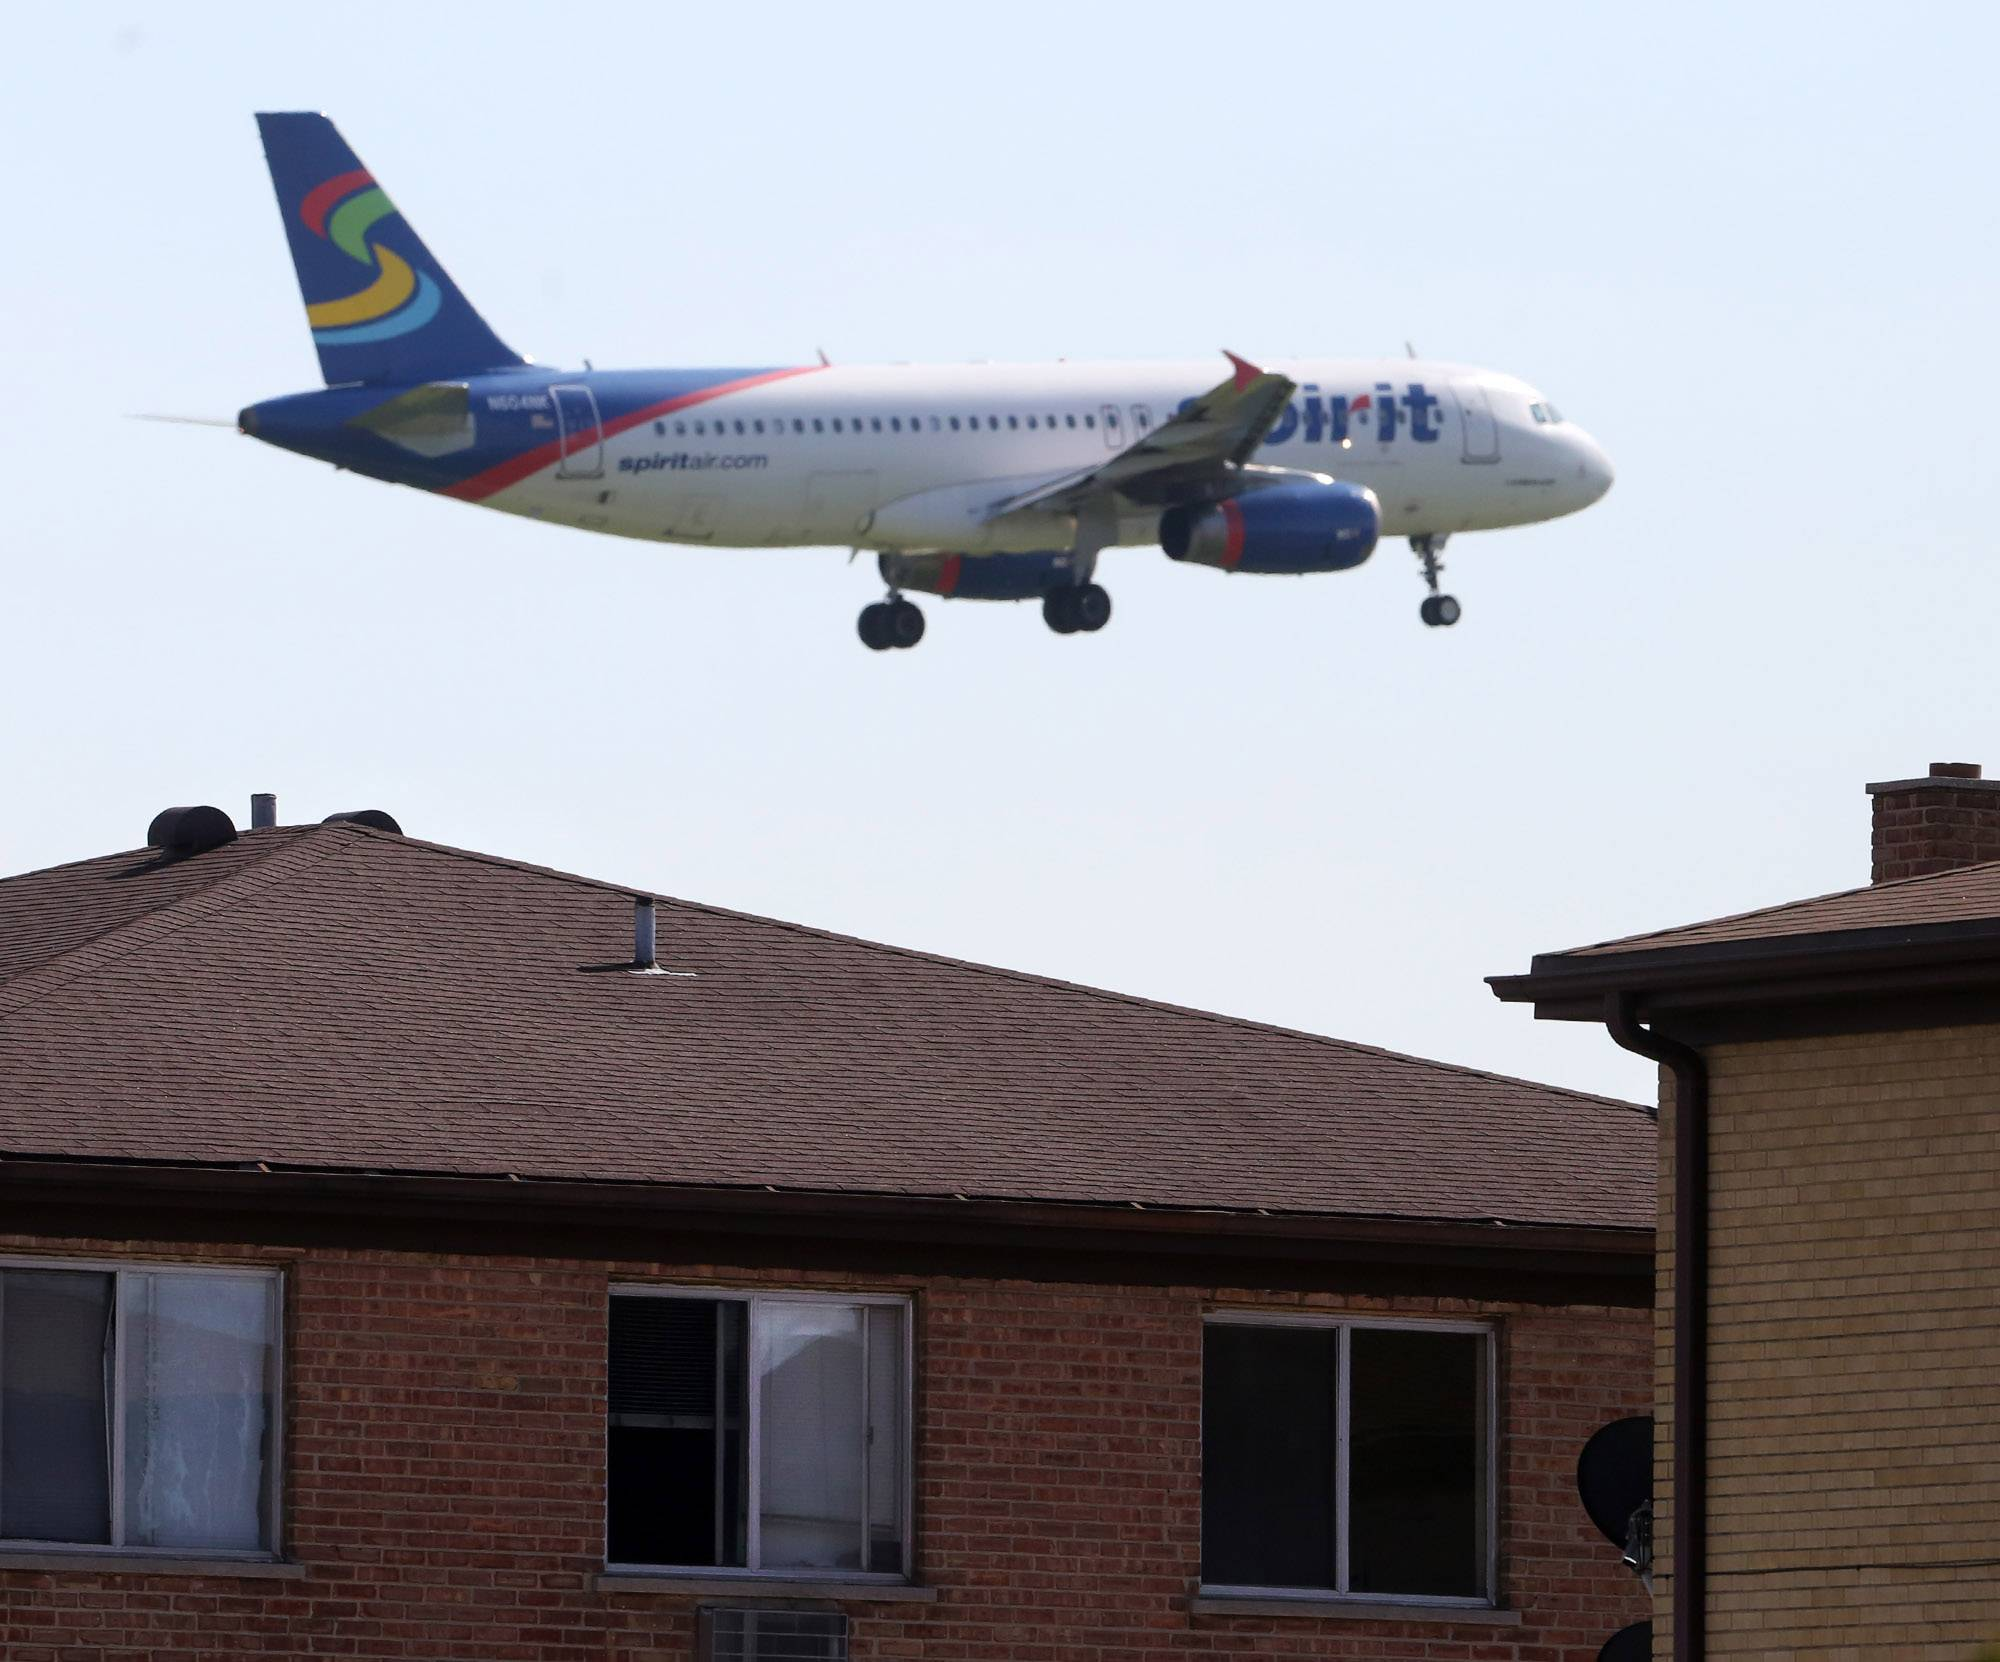 'Living in a war zone:' Residents, mayors blast O'Hare noise